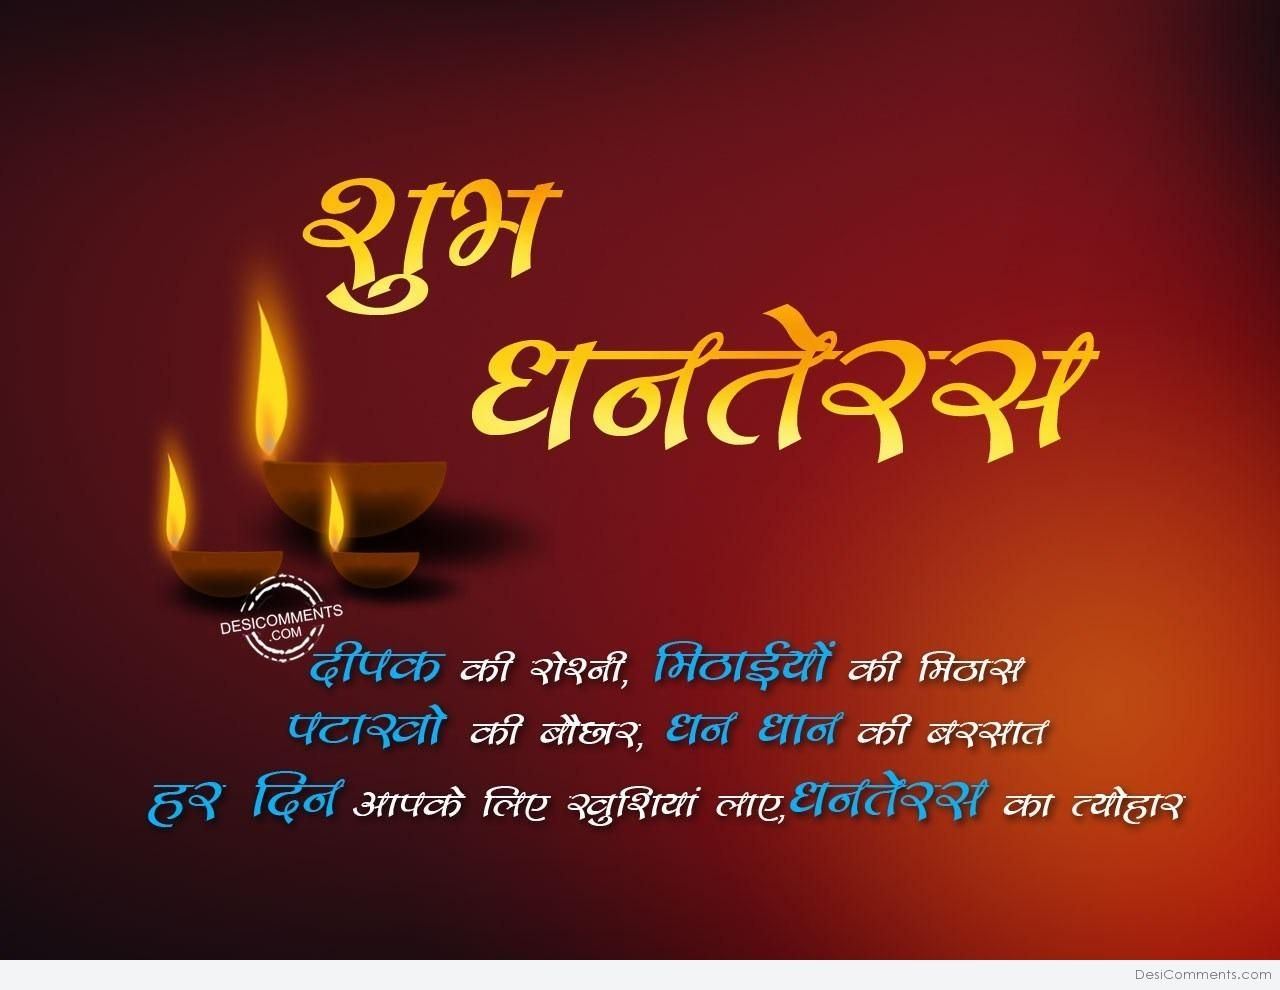 Diwali Images Download 2020 Best Collection Happy Dhanteras Images 2019 Happy Dhanteras Happy Dhanteras Wishes Dhanteras Images